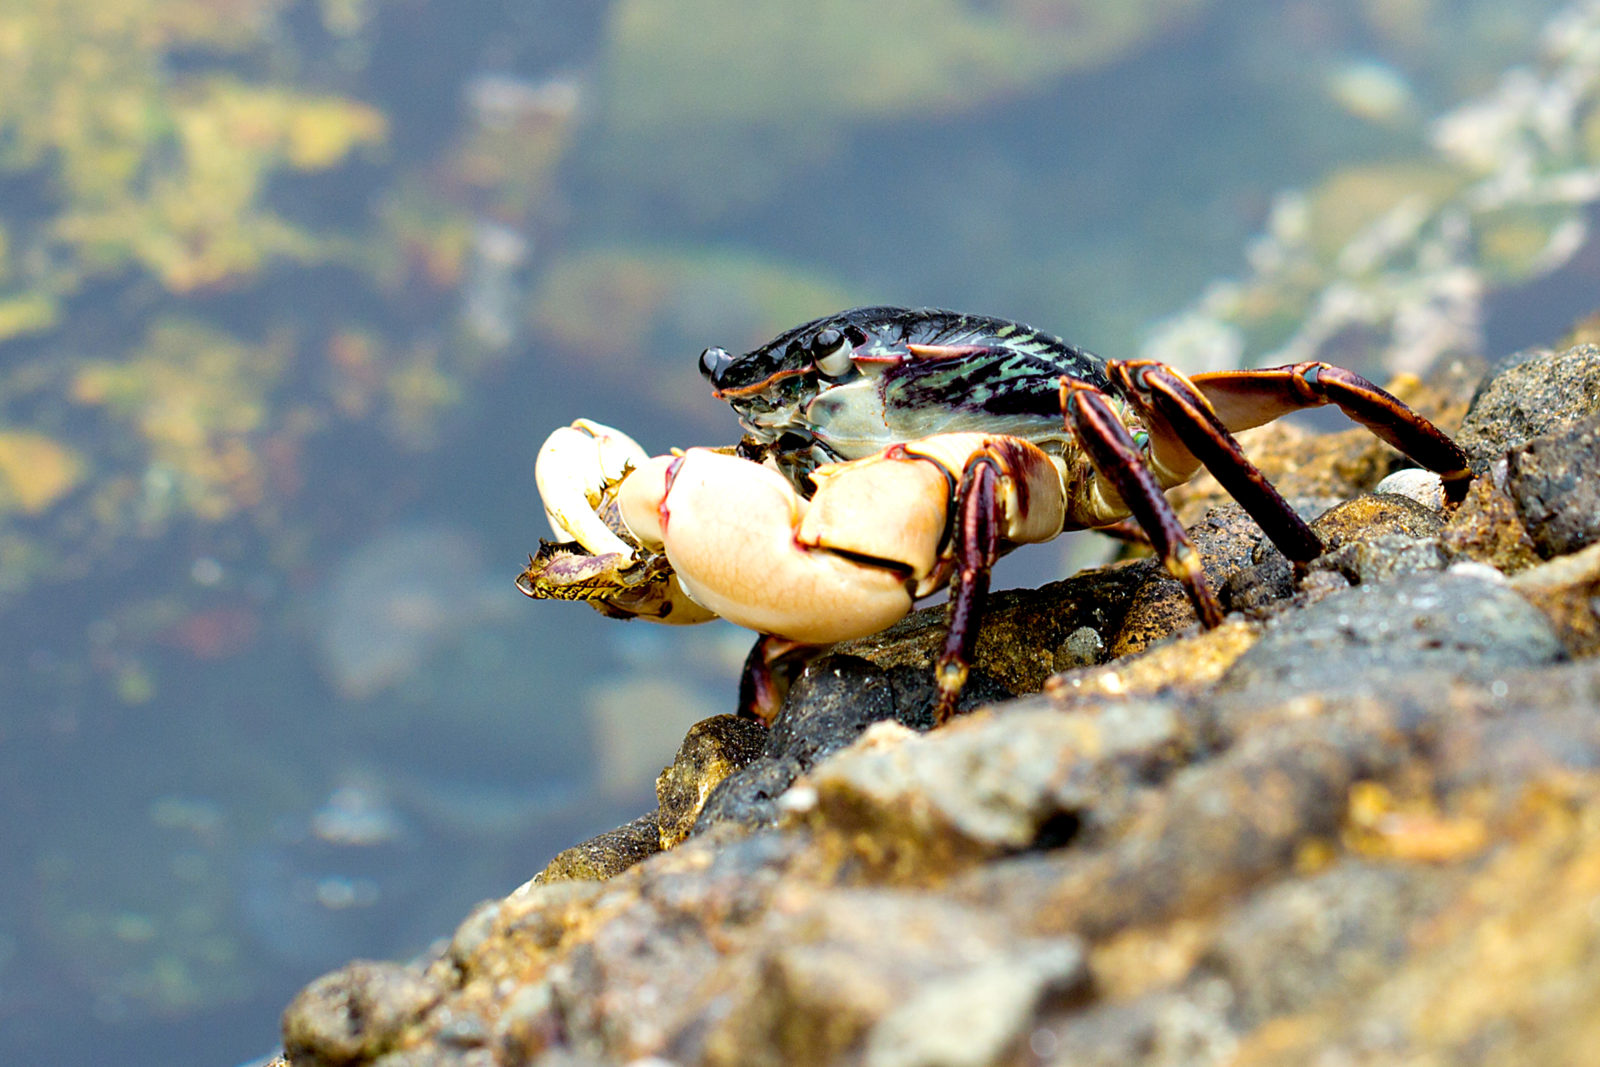 crab - Outdoor Photographer: www.outdoorphotographer.com/photo-contests/great-outdoors/entry...